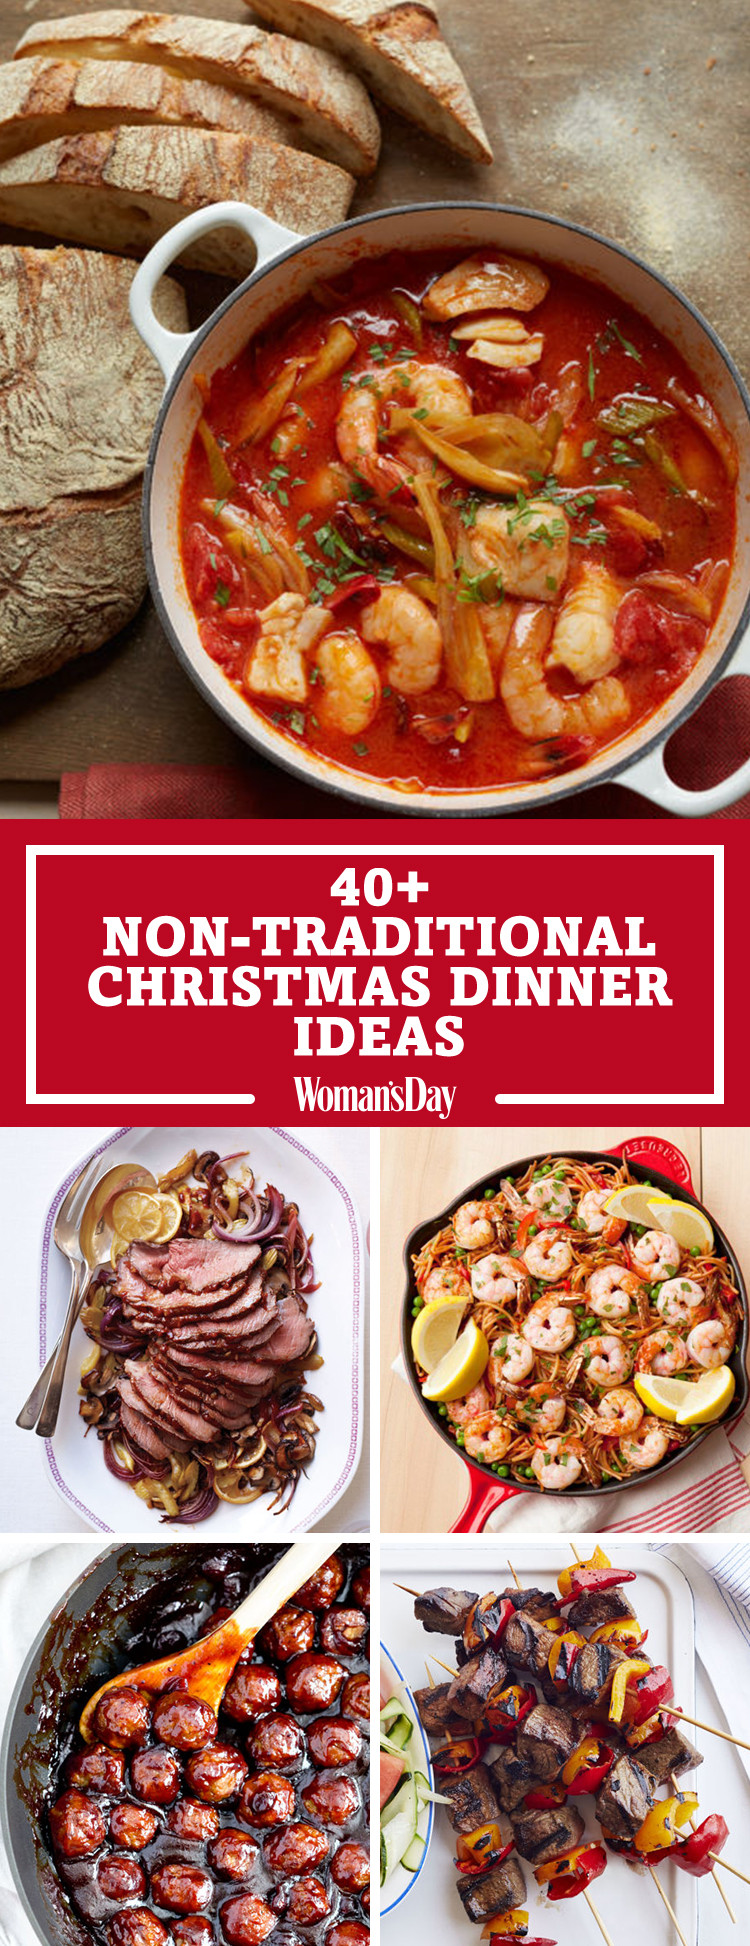 Non Traditional Christmas Dinner Ideas  40 Easy Christmas Dinner Ideas Best Recipes for